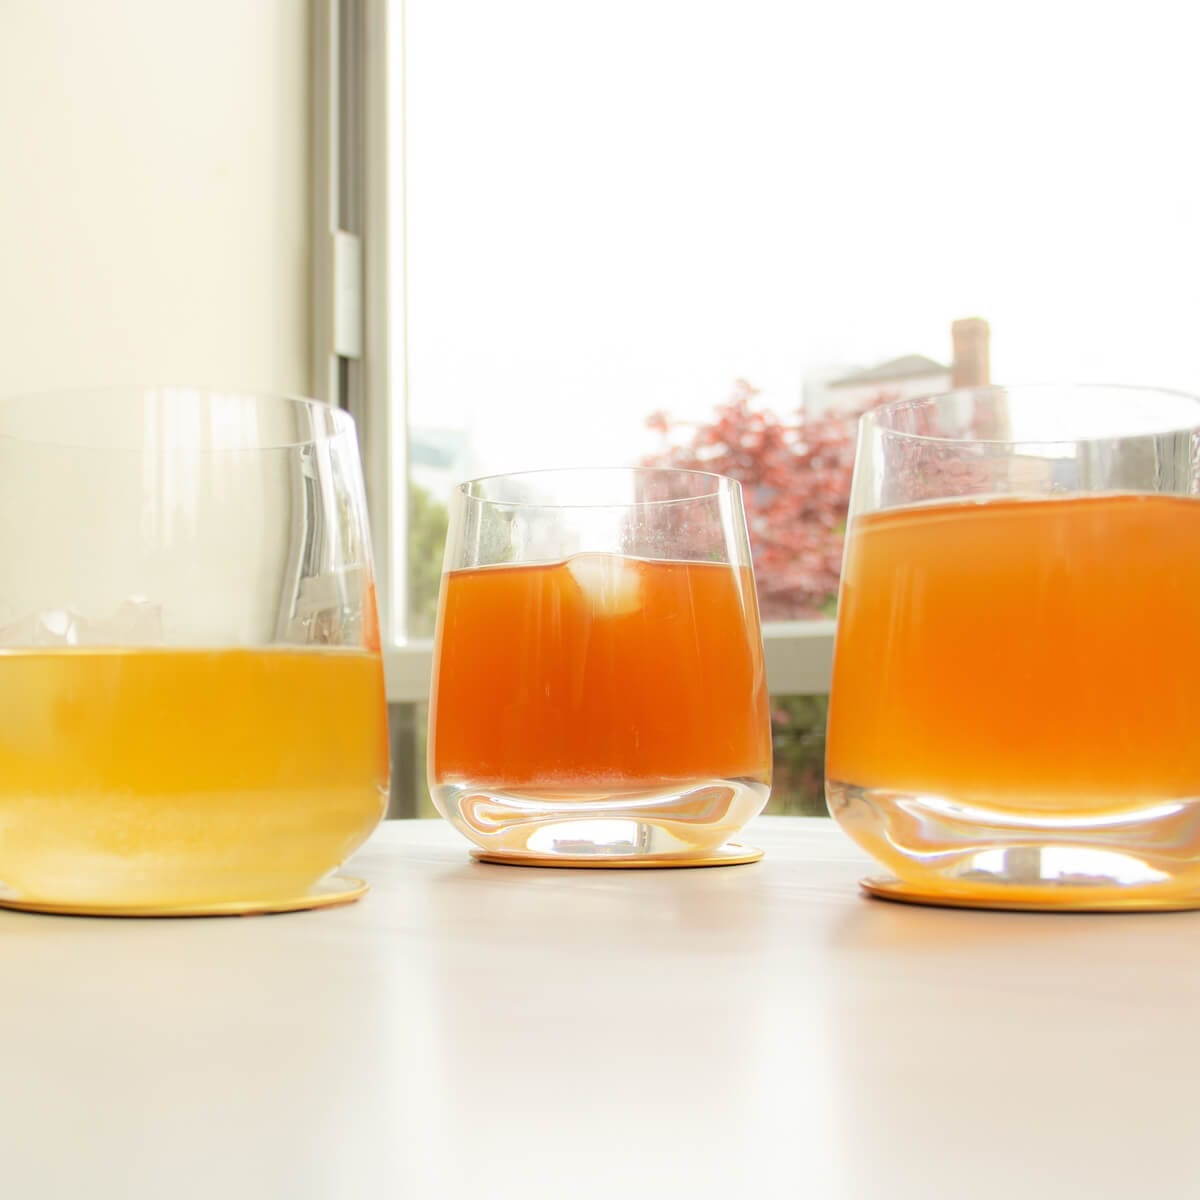 glasses of switchel and shrubs sitting by a window